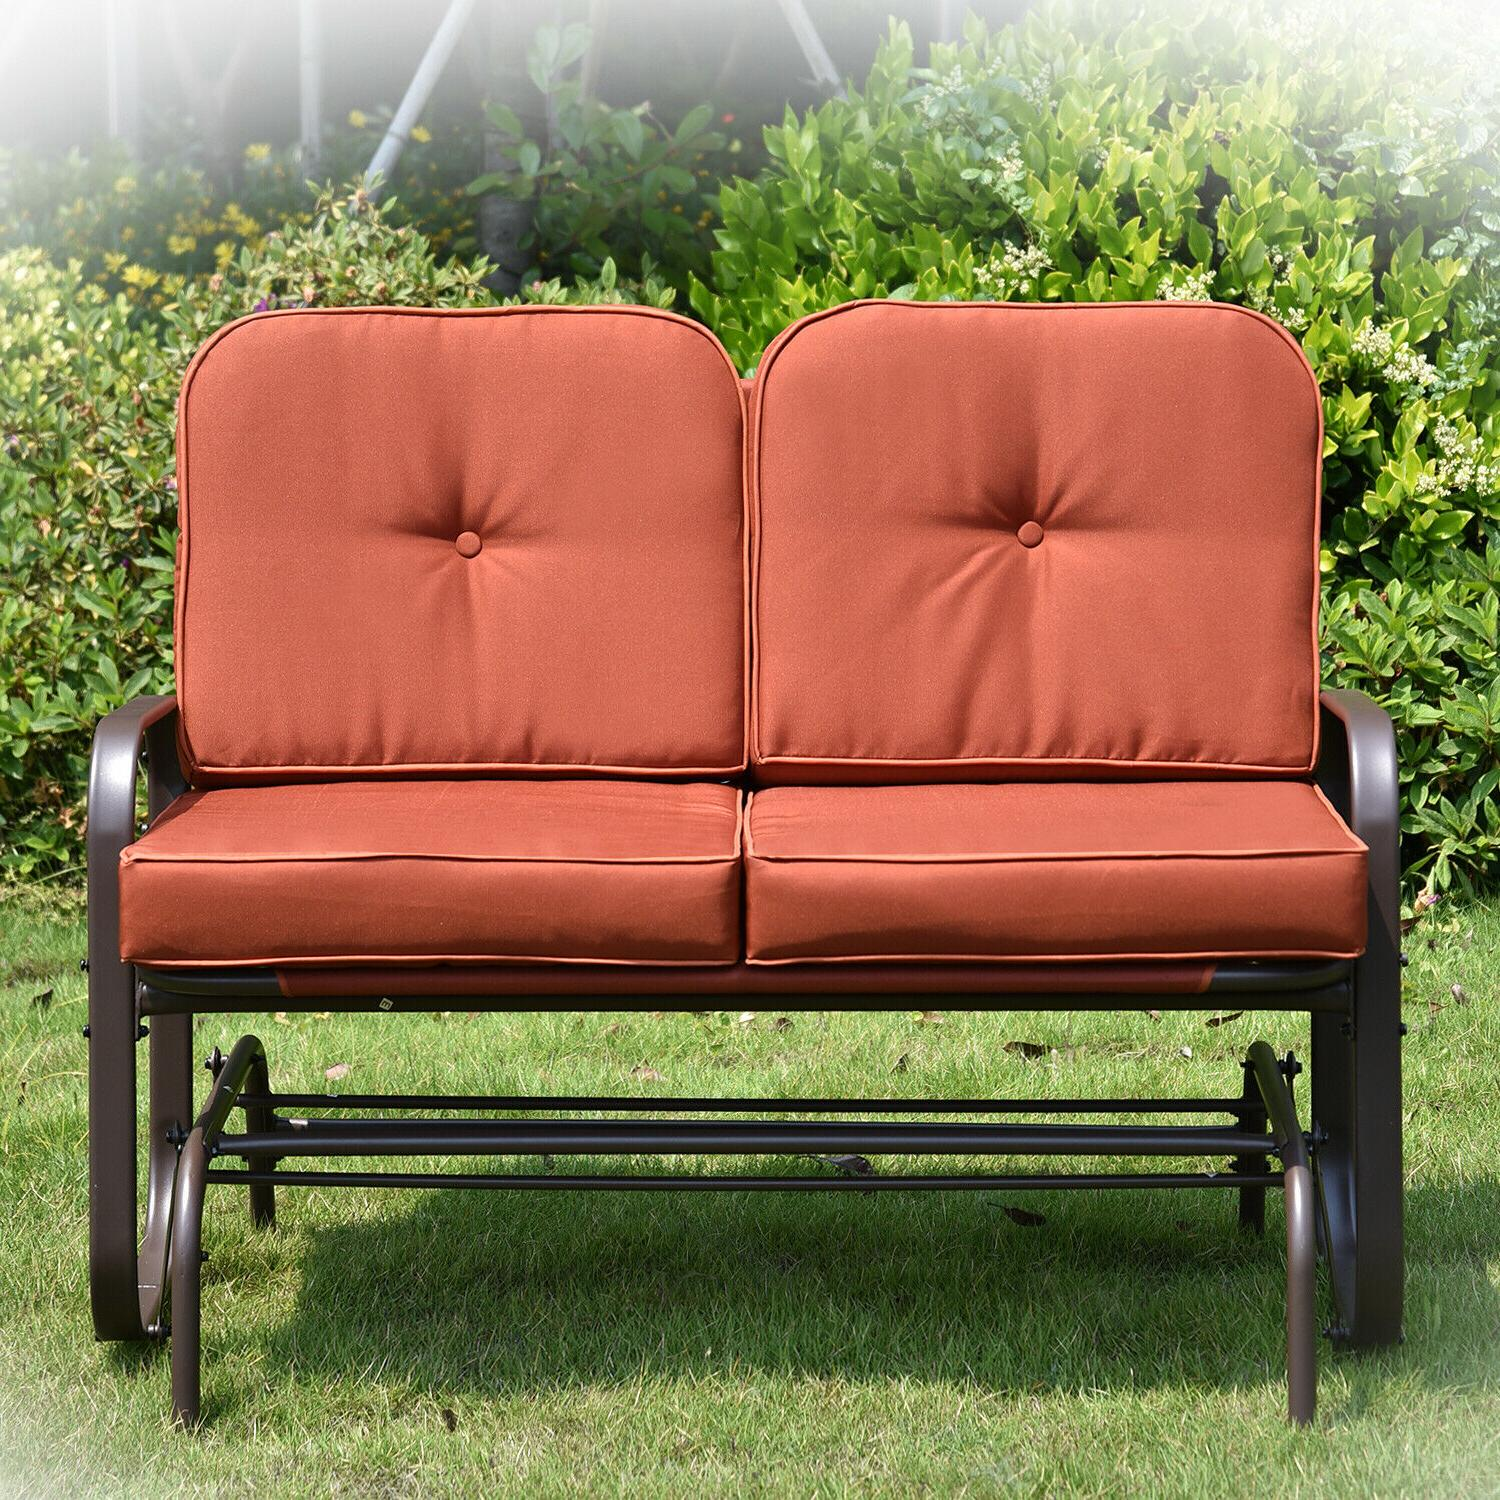 Patio Bench Chair 2 Outdoor